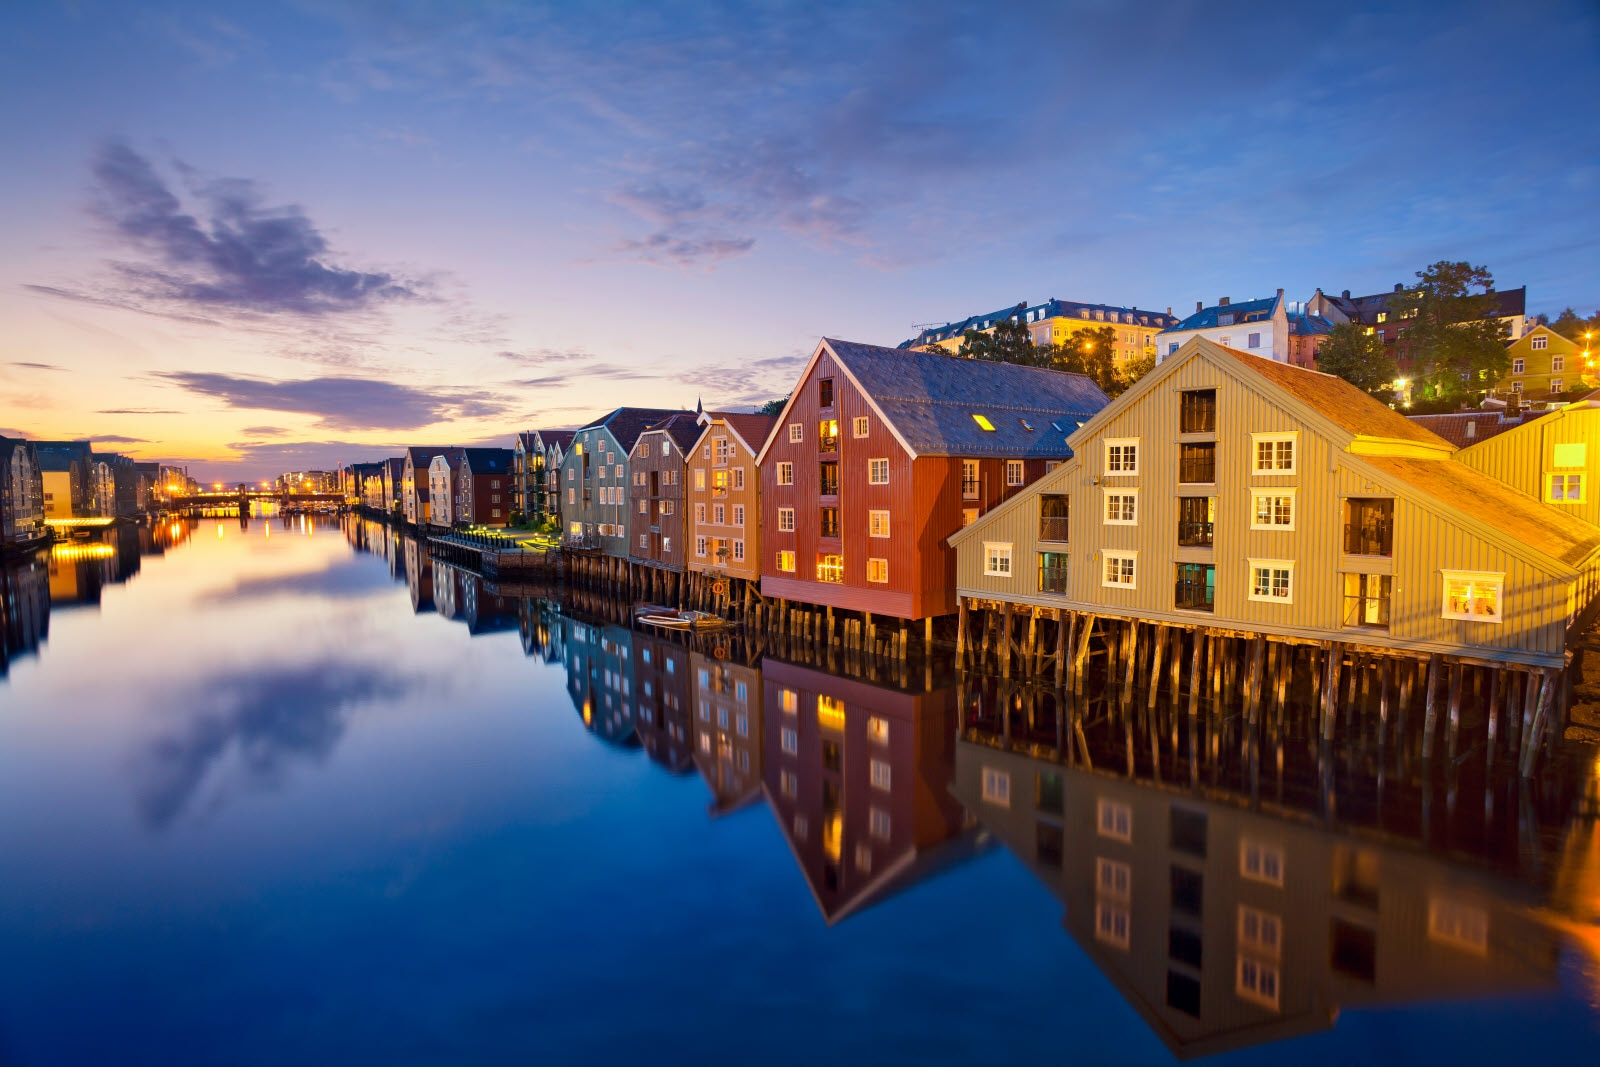 Houses, Row, Harbor, Sunset